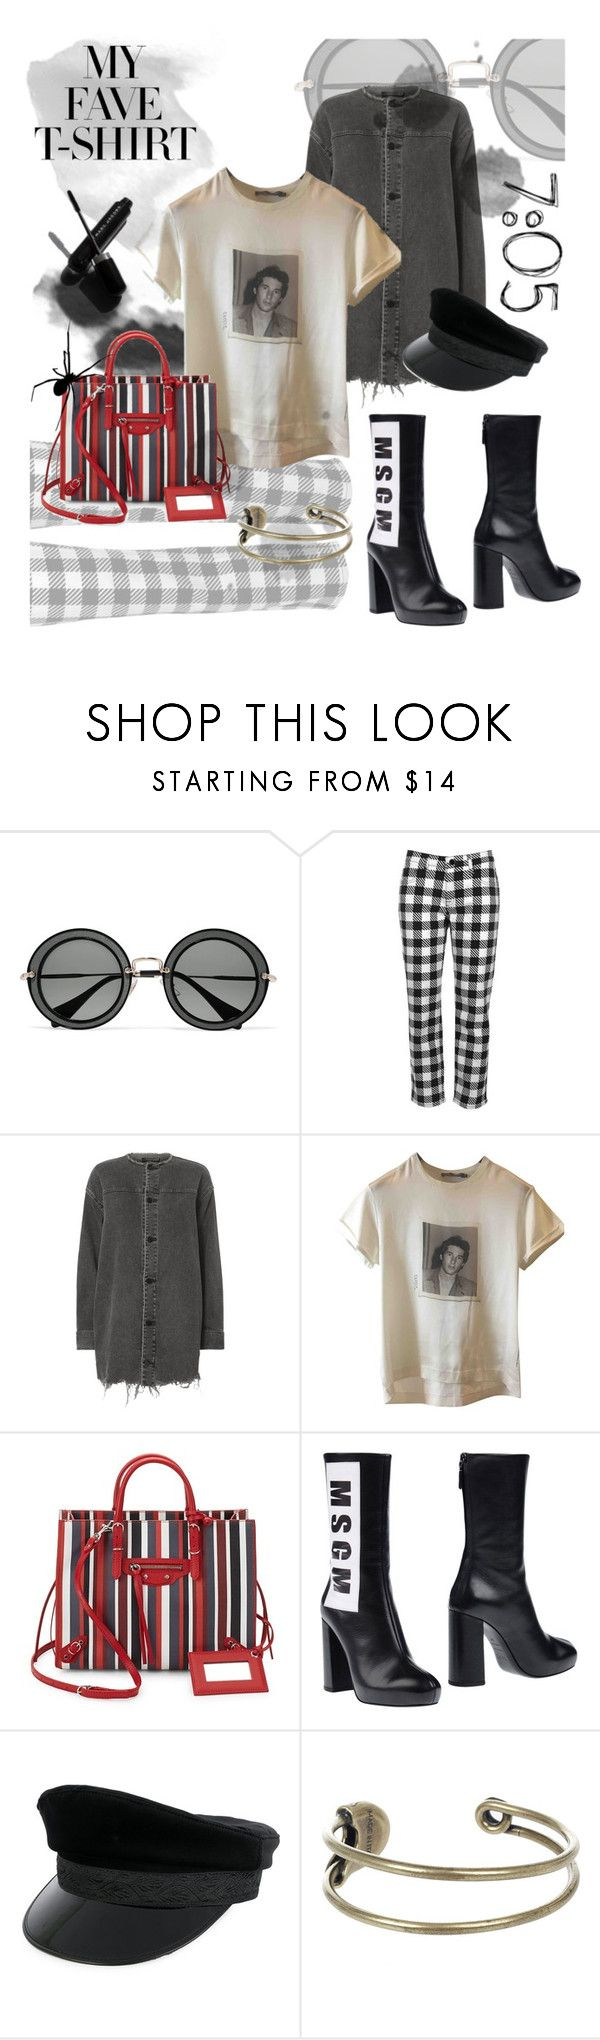 """""""MY FAVE T-SHIRT /// Easy Come Easy Go"""" by madtrr ❤ liked on Polyvore featuring Miu Miu, Victoria, Victoria Beckham, Garance Doré, Alexander Wang, Dolce&Gabbana, Balenciaga, MSGM, Manokhi and Diesel"""